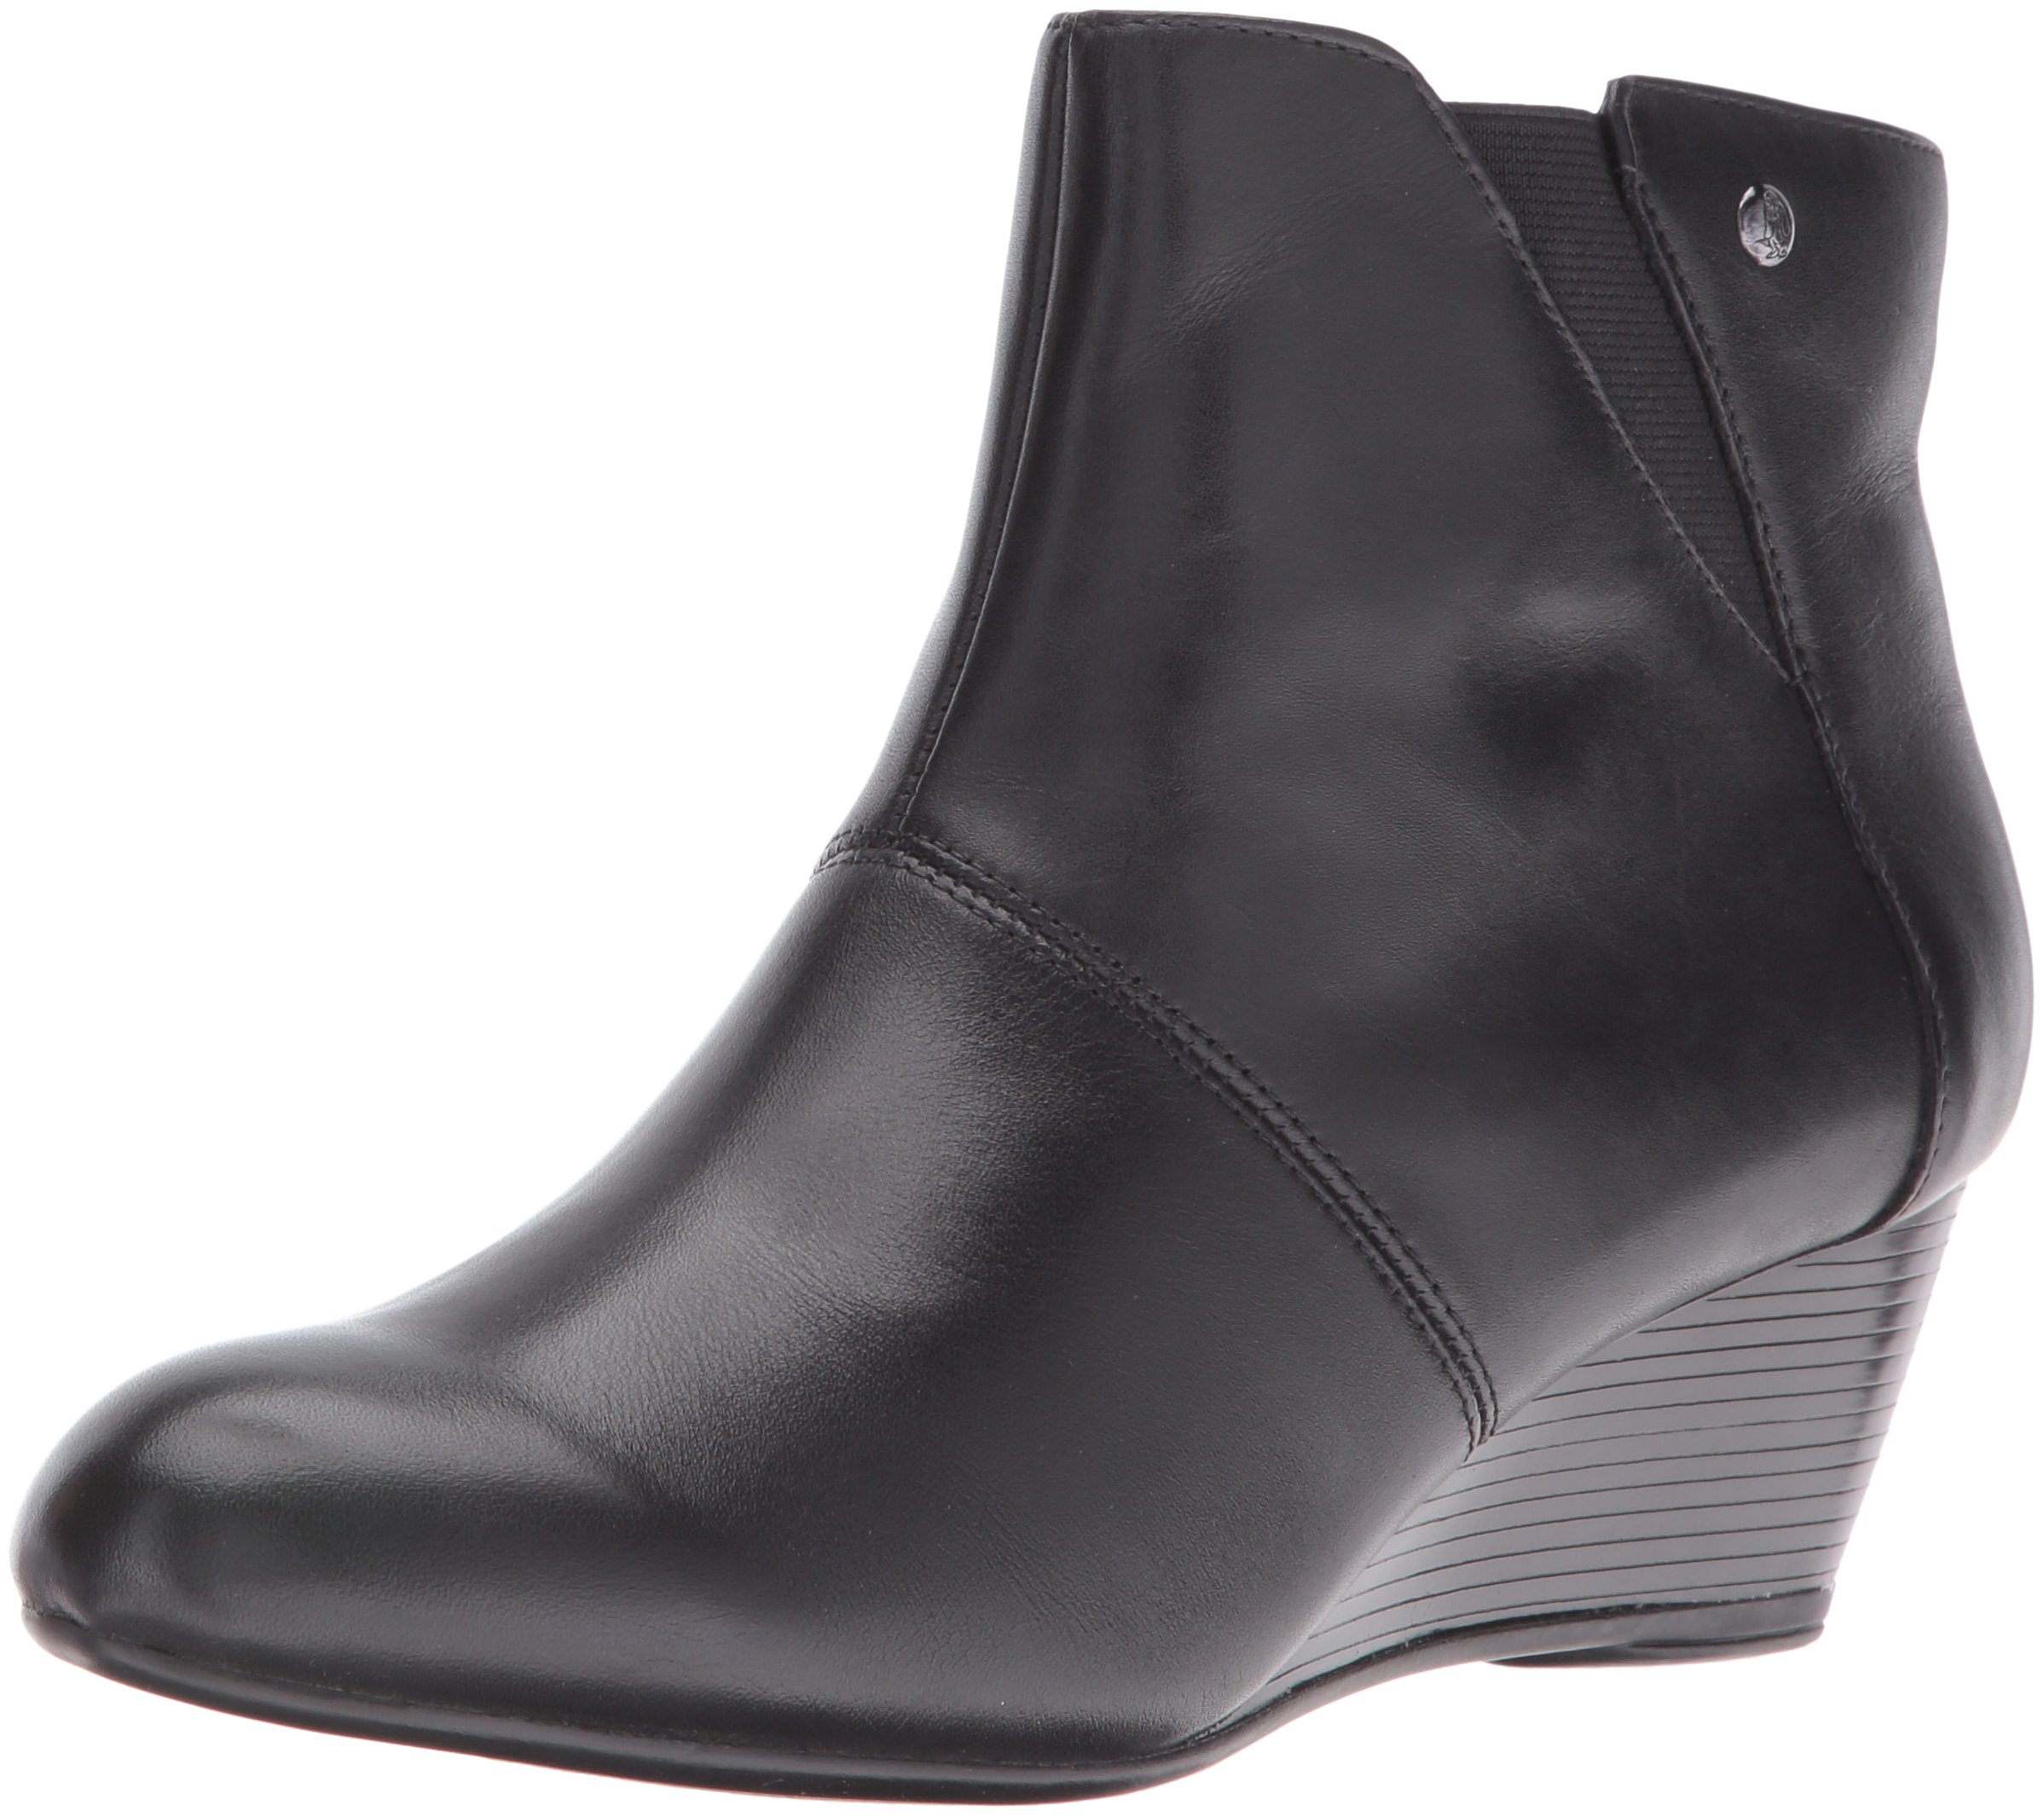 Hush Puppies Women's Poised Rhea Boot, Black Wp Leather, 11 W US